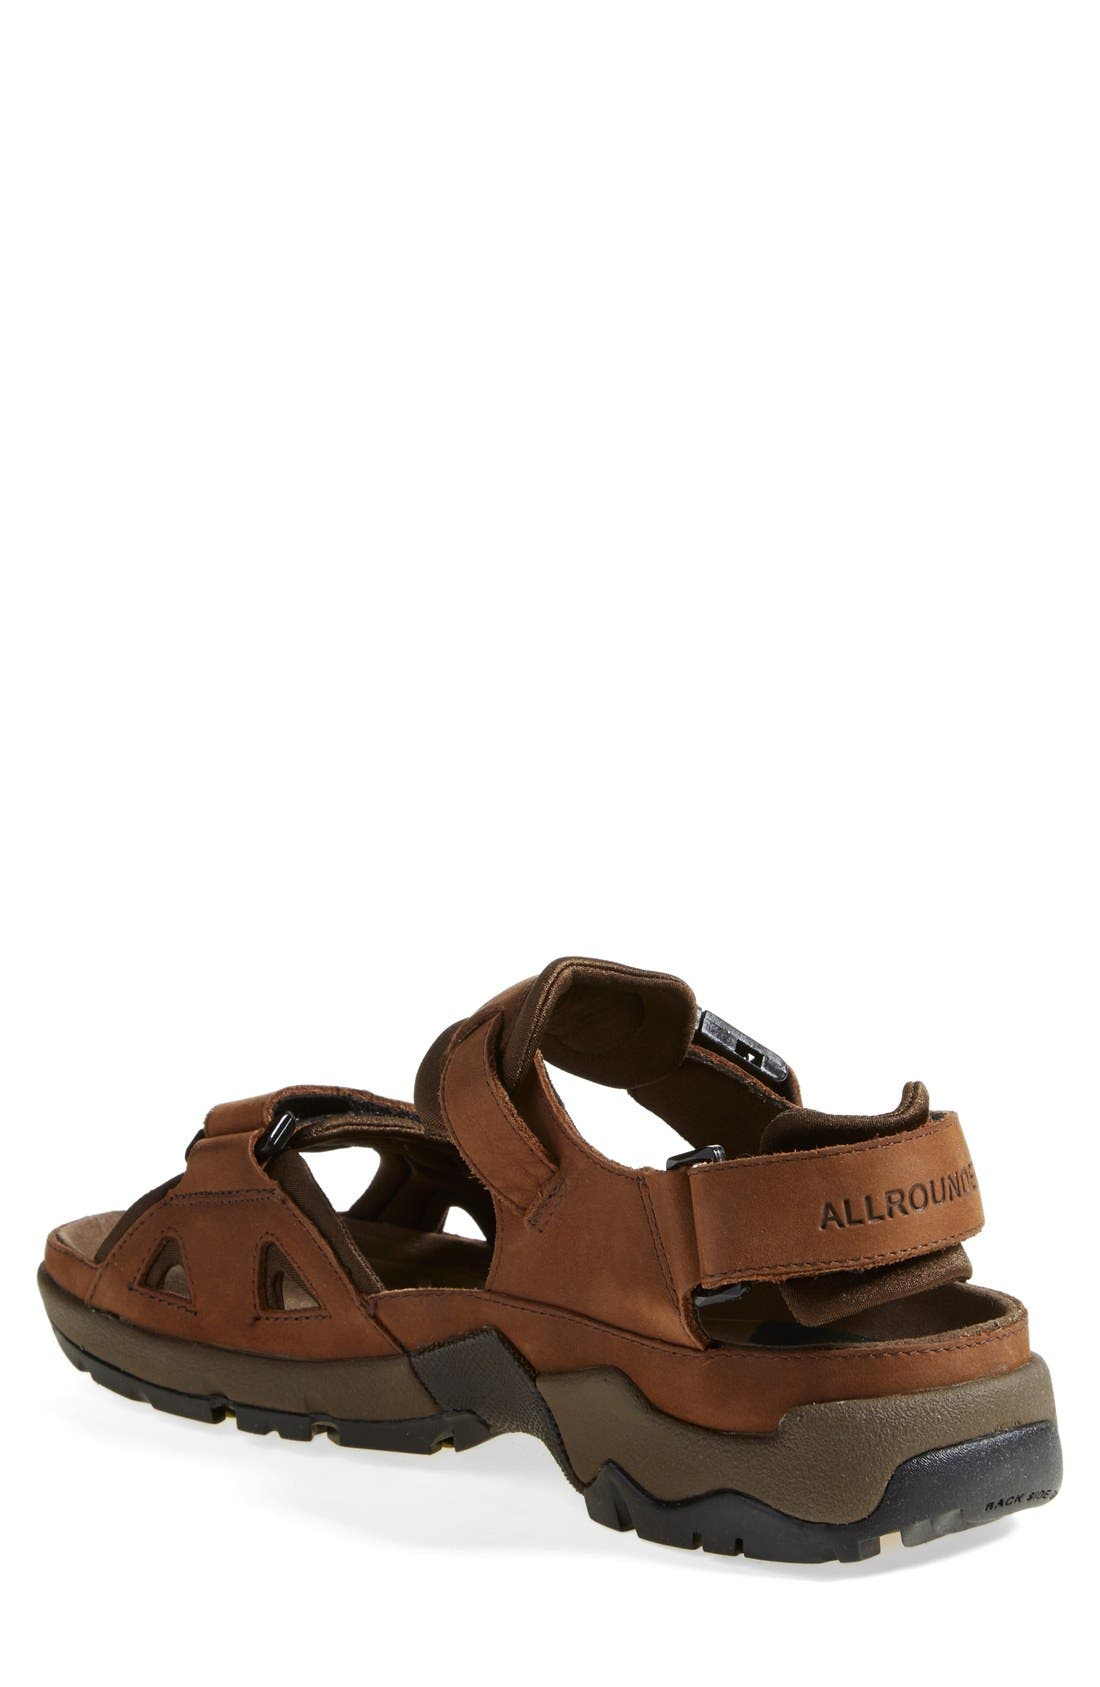 Alternate Image 2  - Allrounder by Mephisto 'Alligator' Sandal (Men)